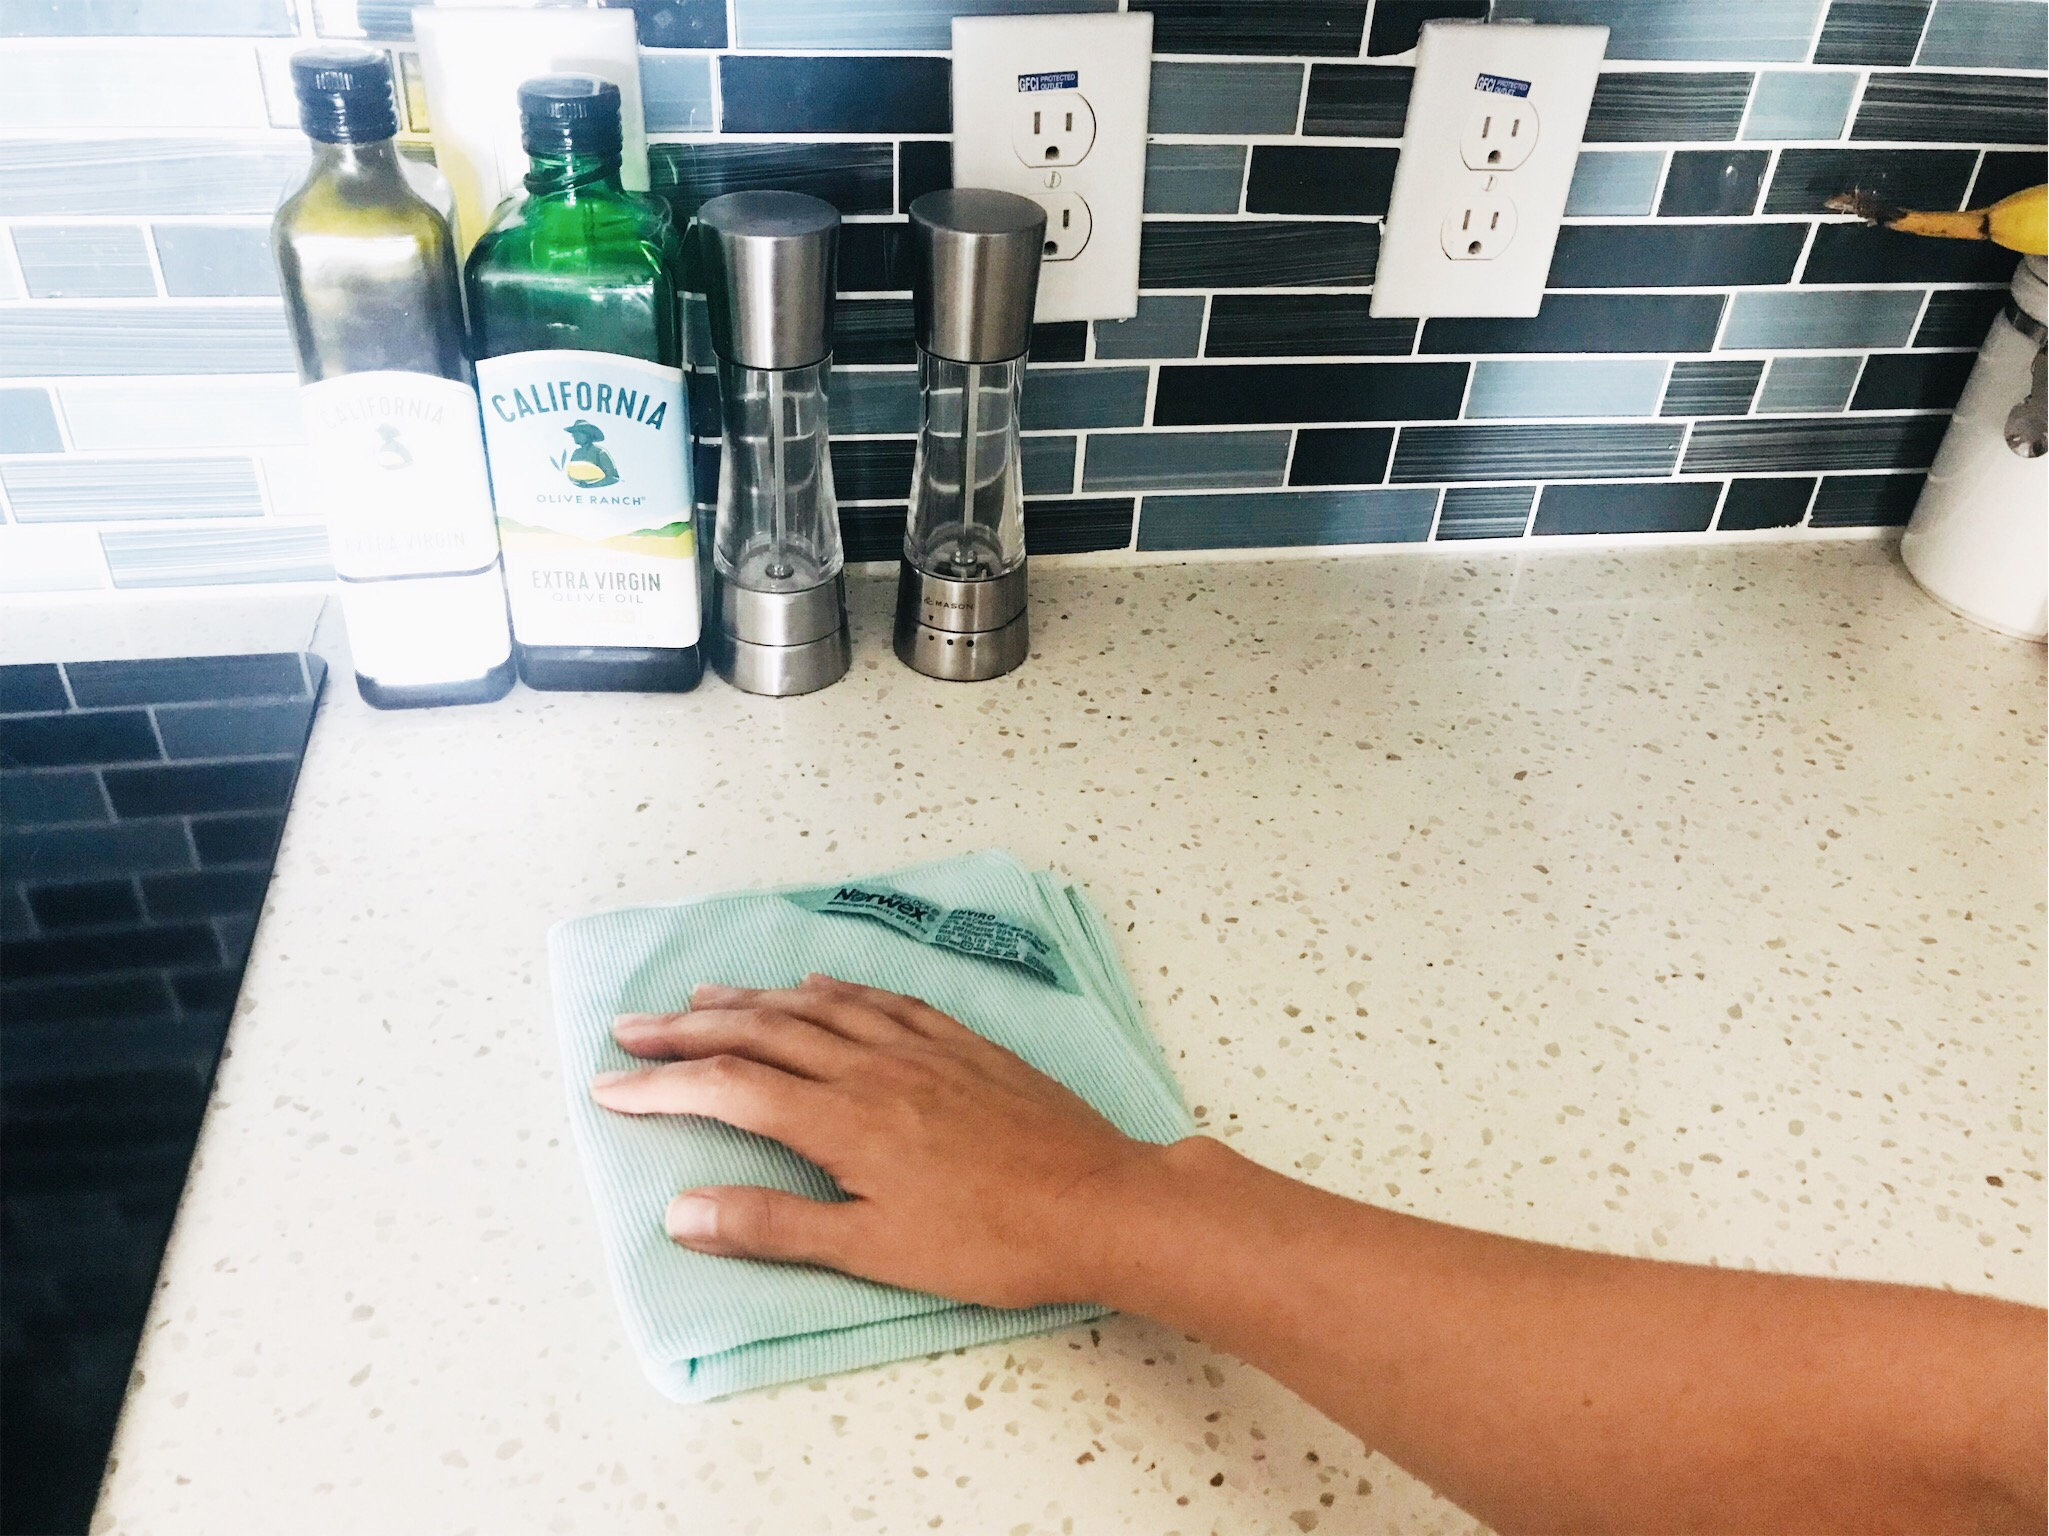 Keep your home clean and tidy by cleaning the counters with  Norwex Envirocloth  every morning. #cleanroutine #tidyhome #cleaningchecklist